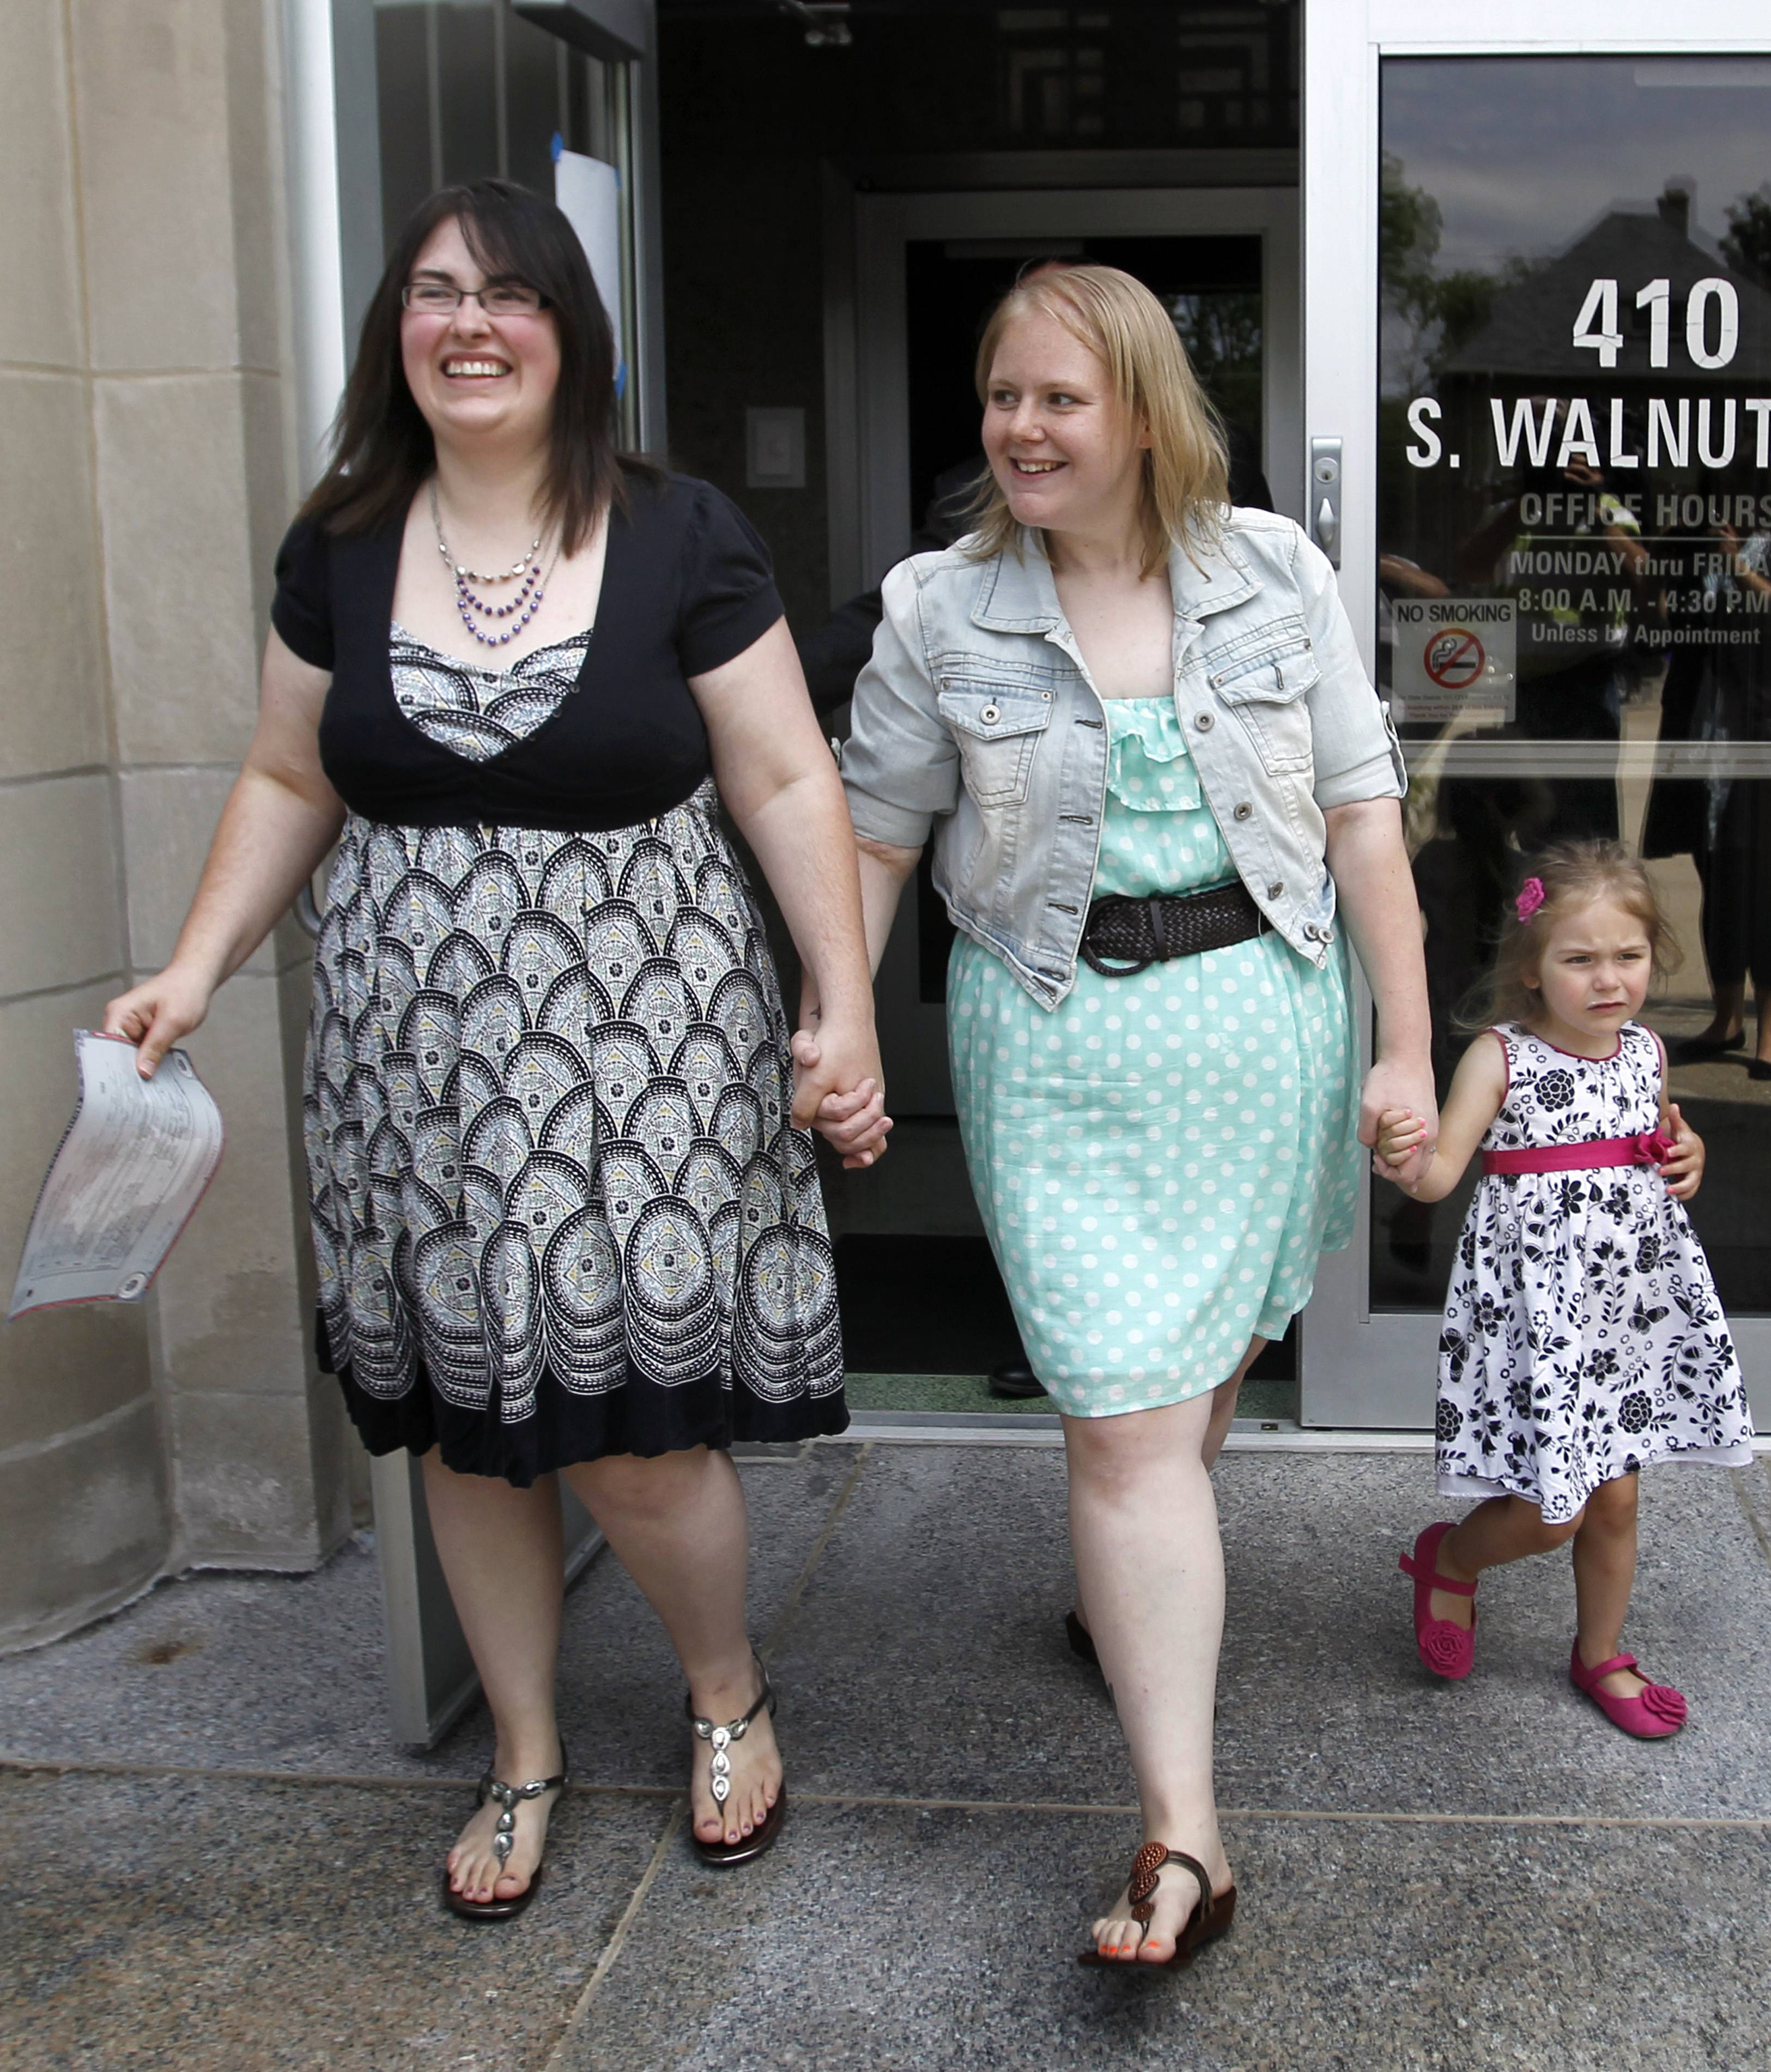 5 things to know about gay marriage in Wisconsin